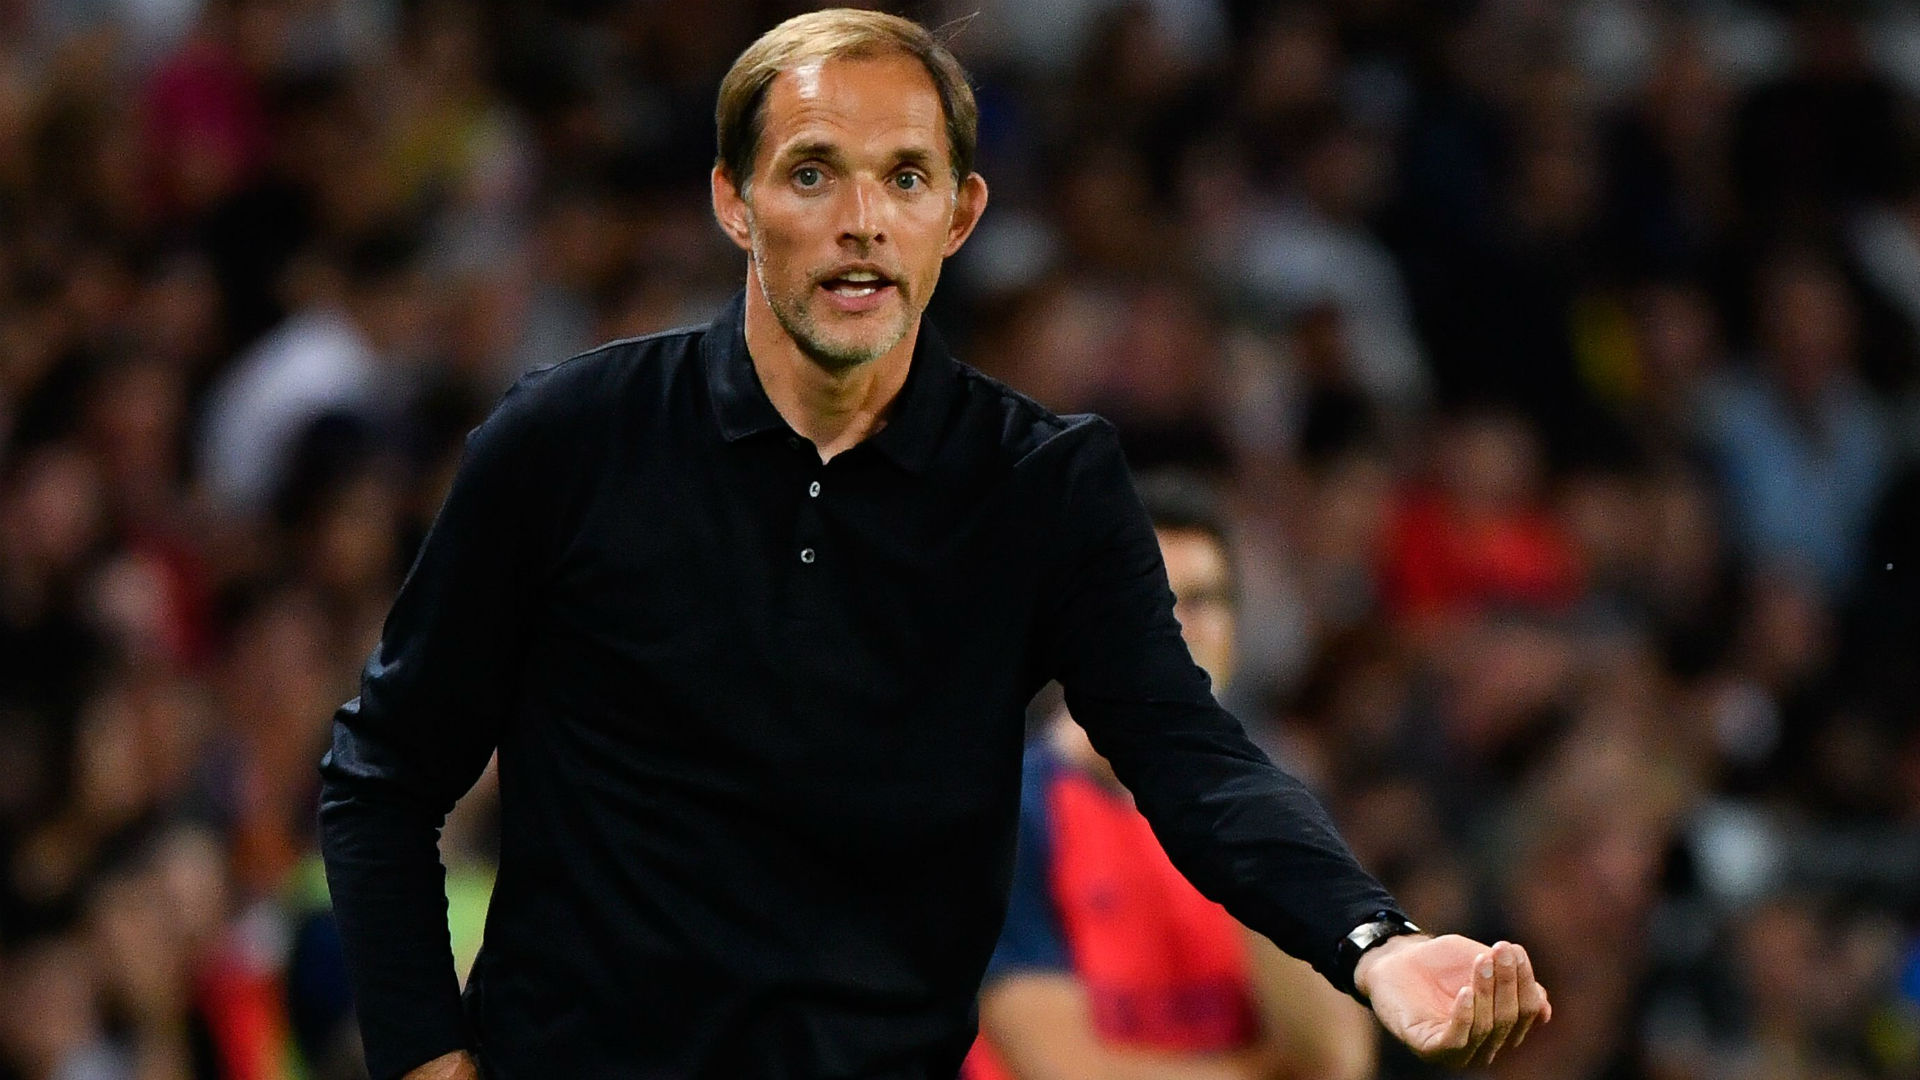 Thomas Tuchel PSG Caen Ligue 1 12082018